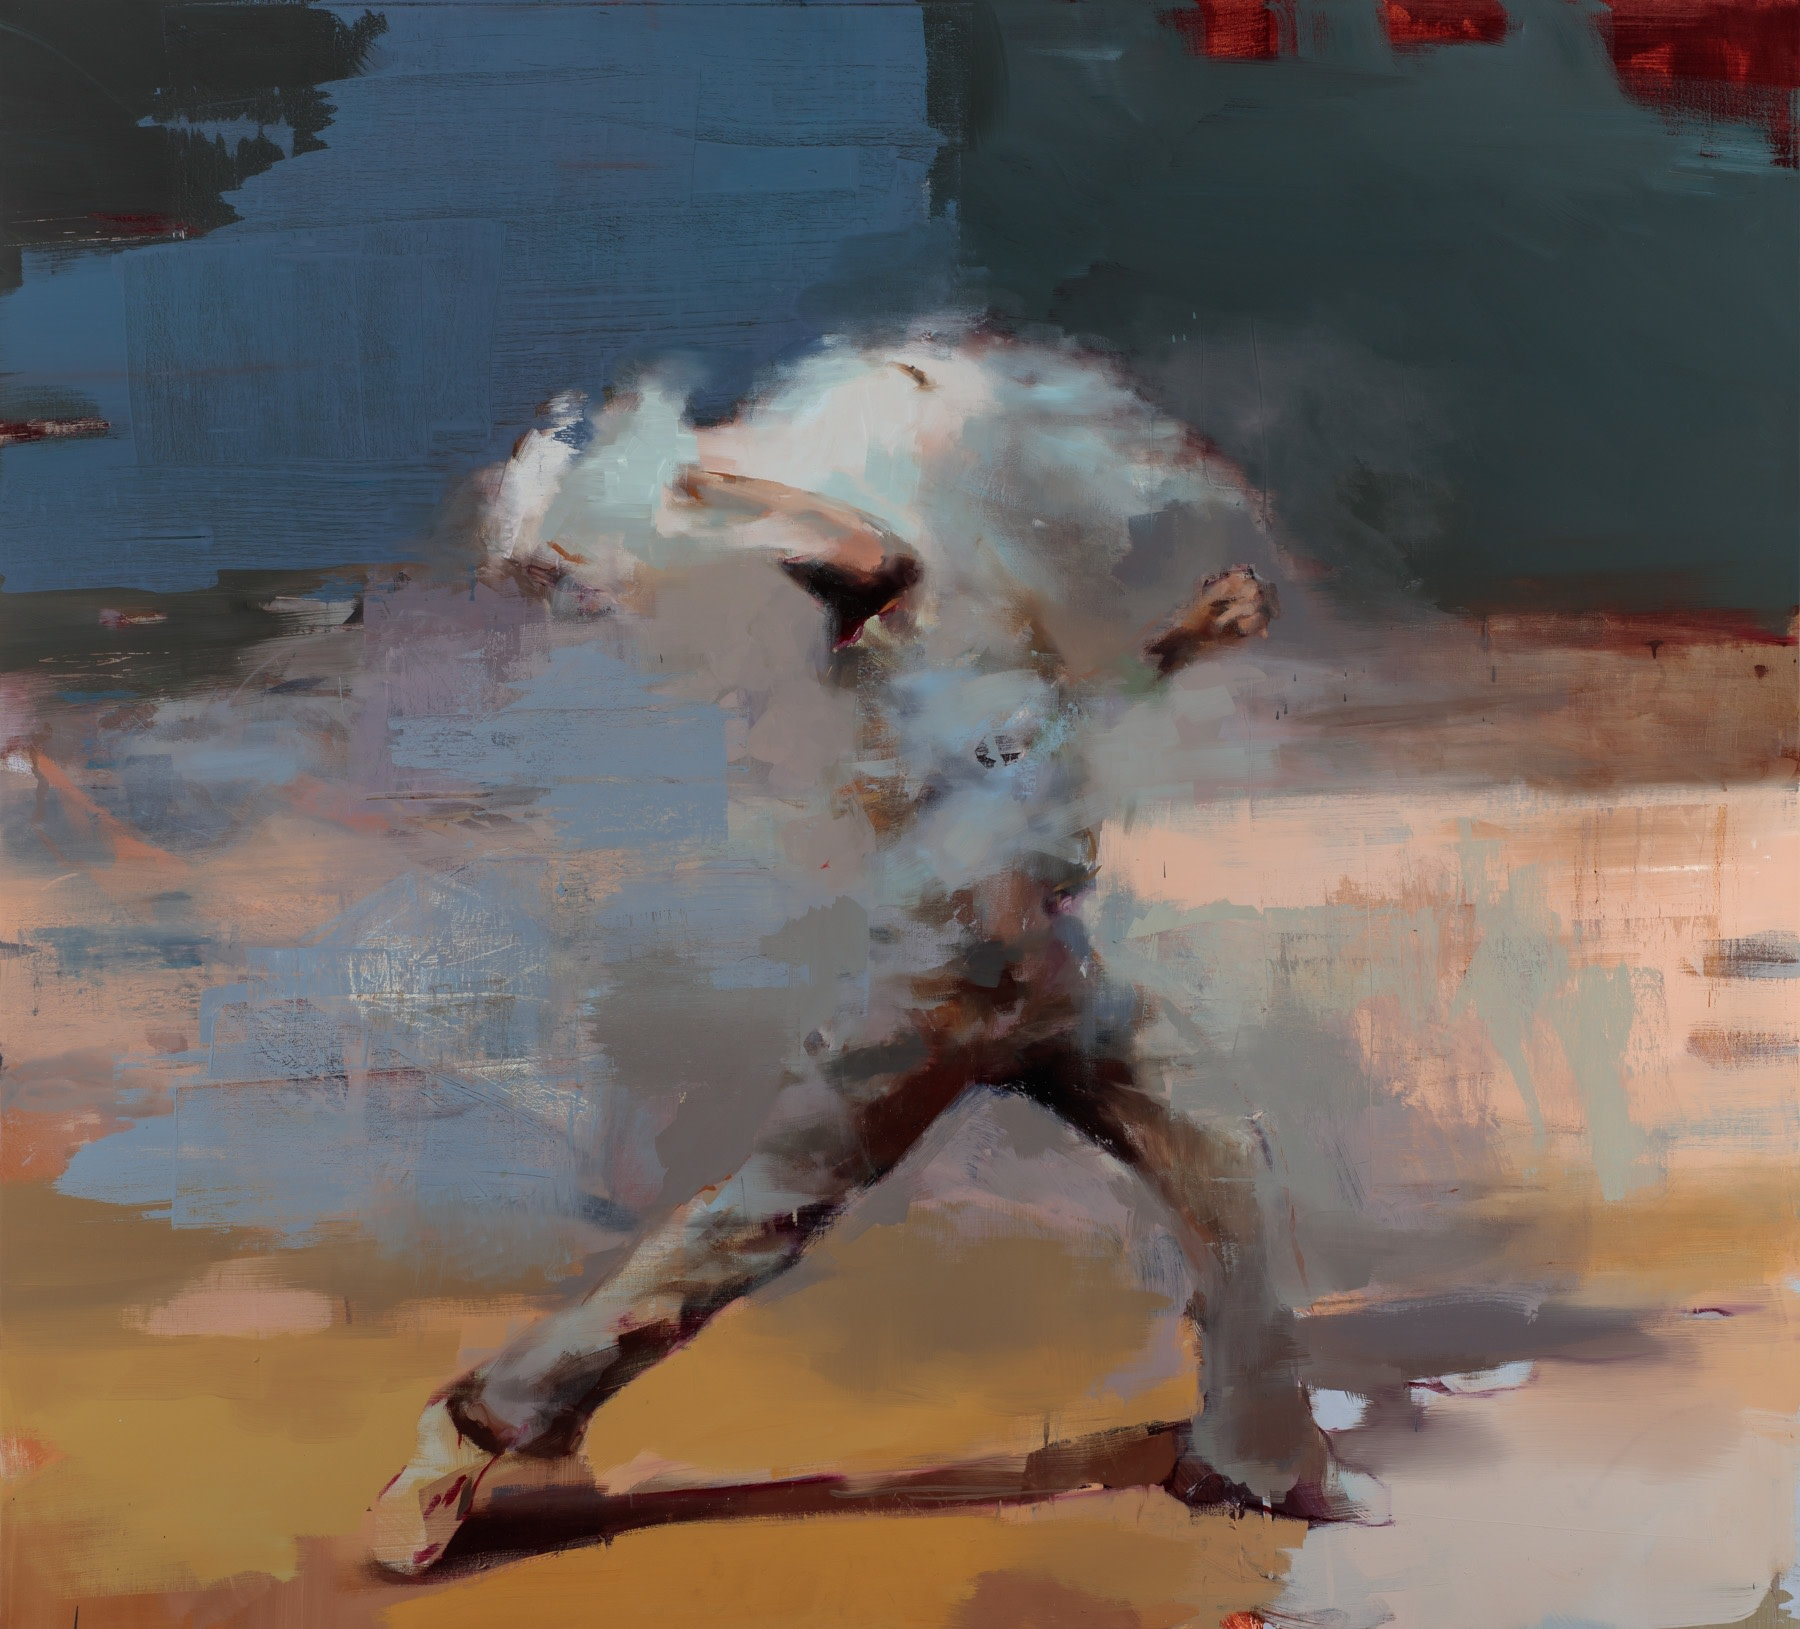 Jerome Lagarrigue | Thrower 2